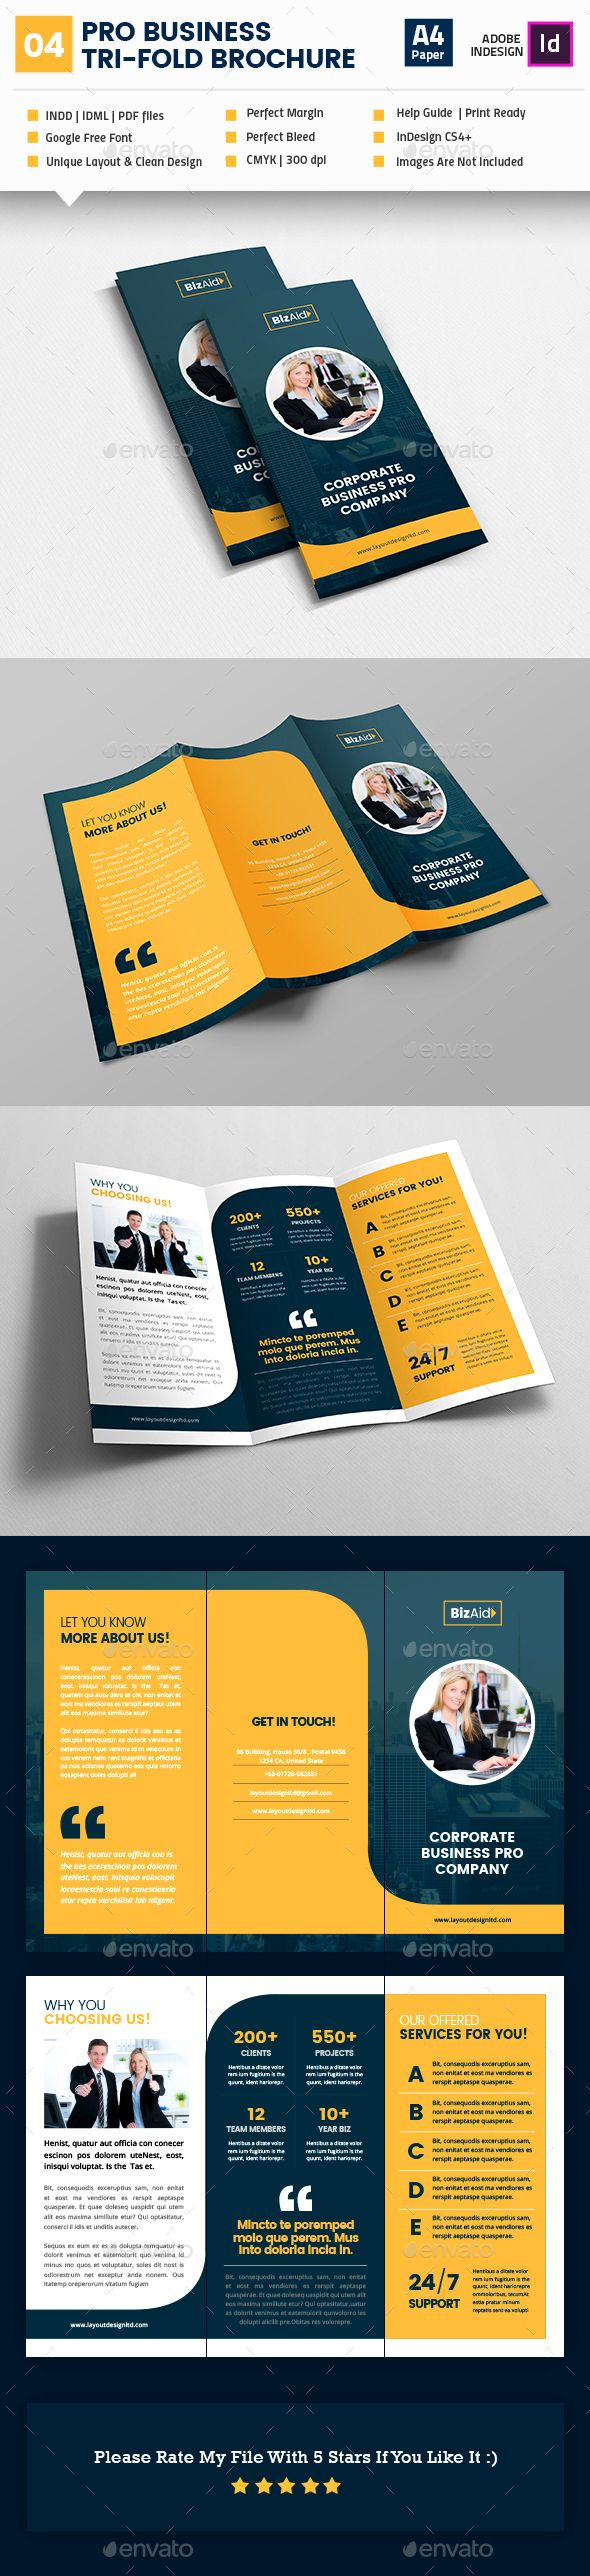 Pro Business TriFold Brochure Template InDesign INDD Brochure - Business tri fold brochure templates